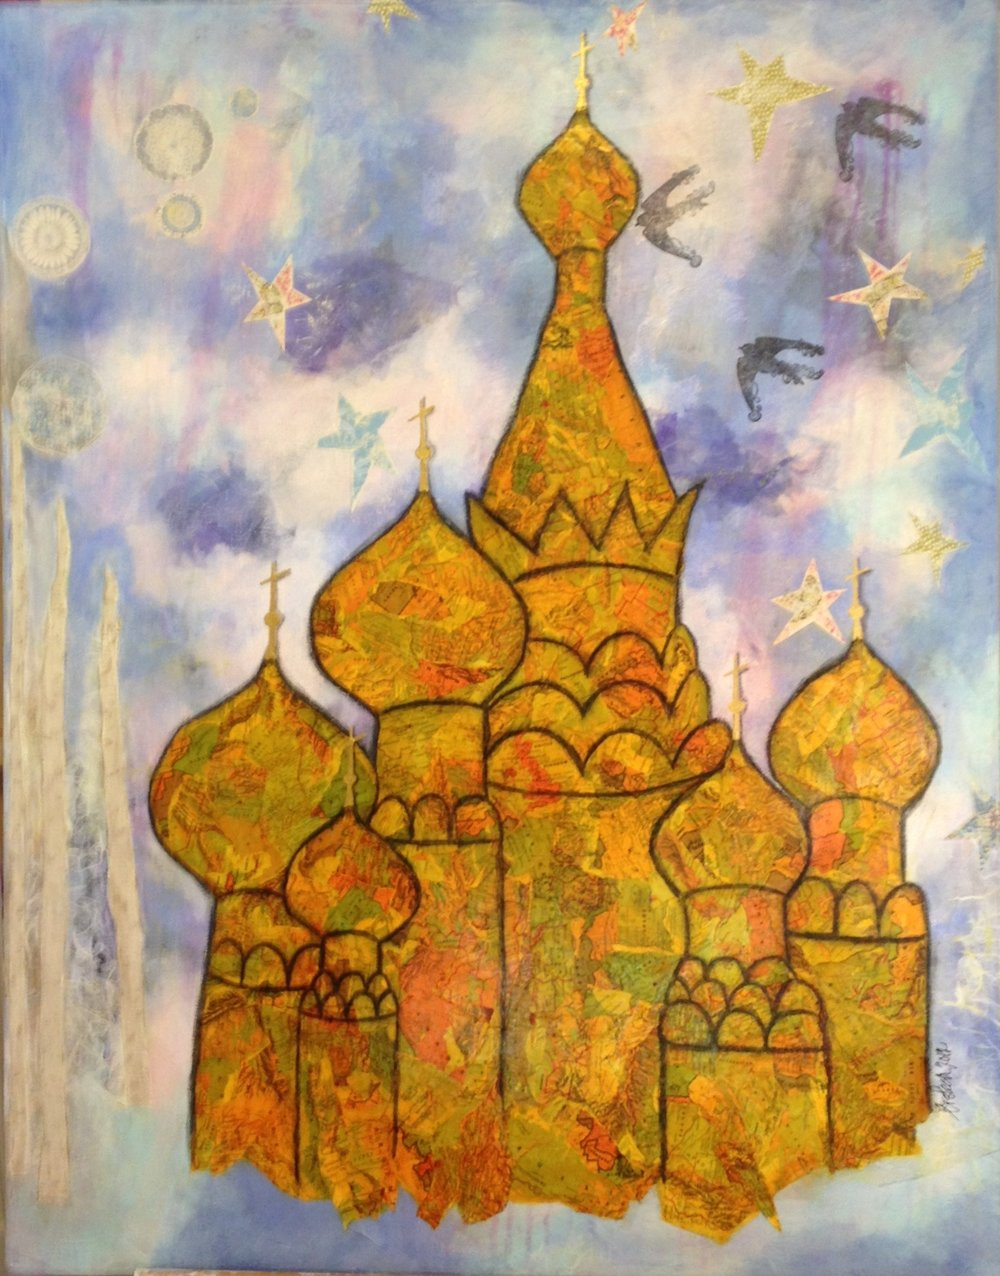 Dream of St. Basil's 2012